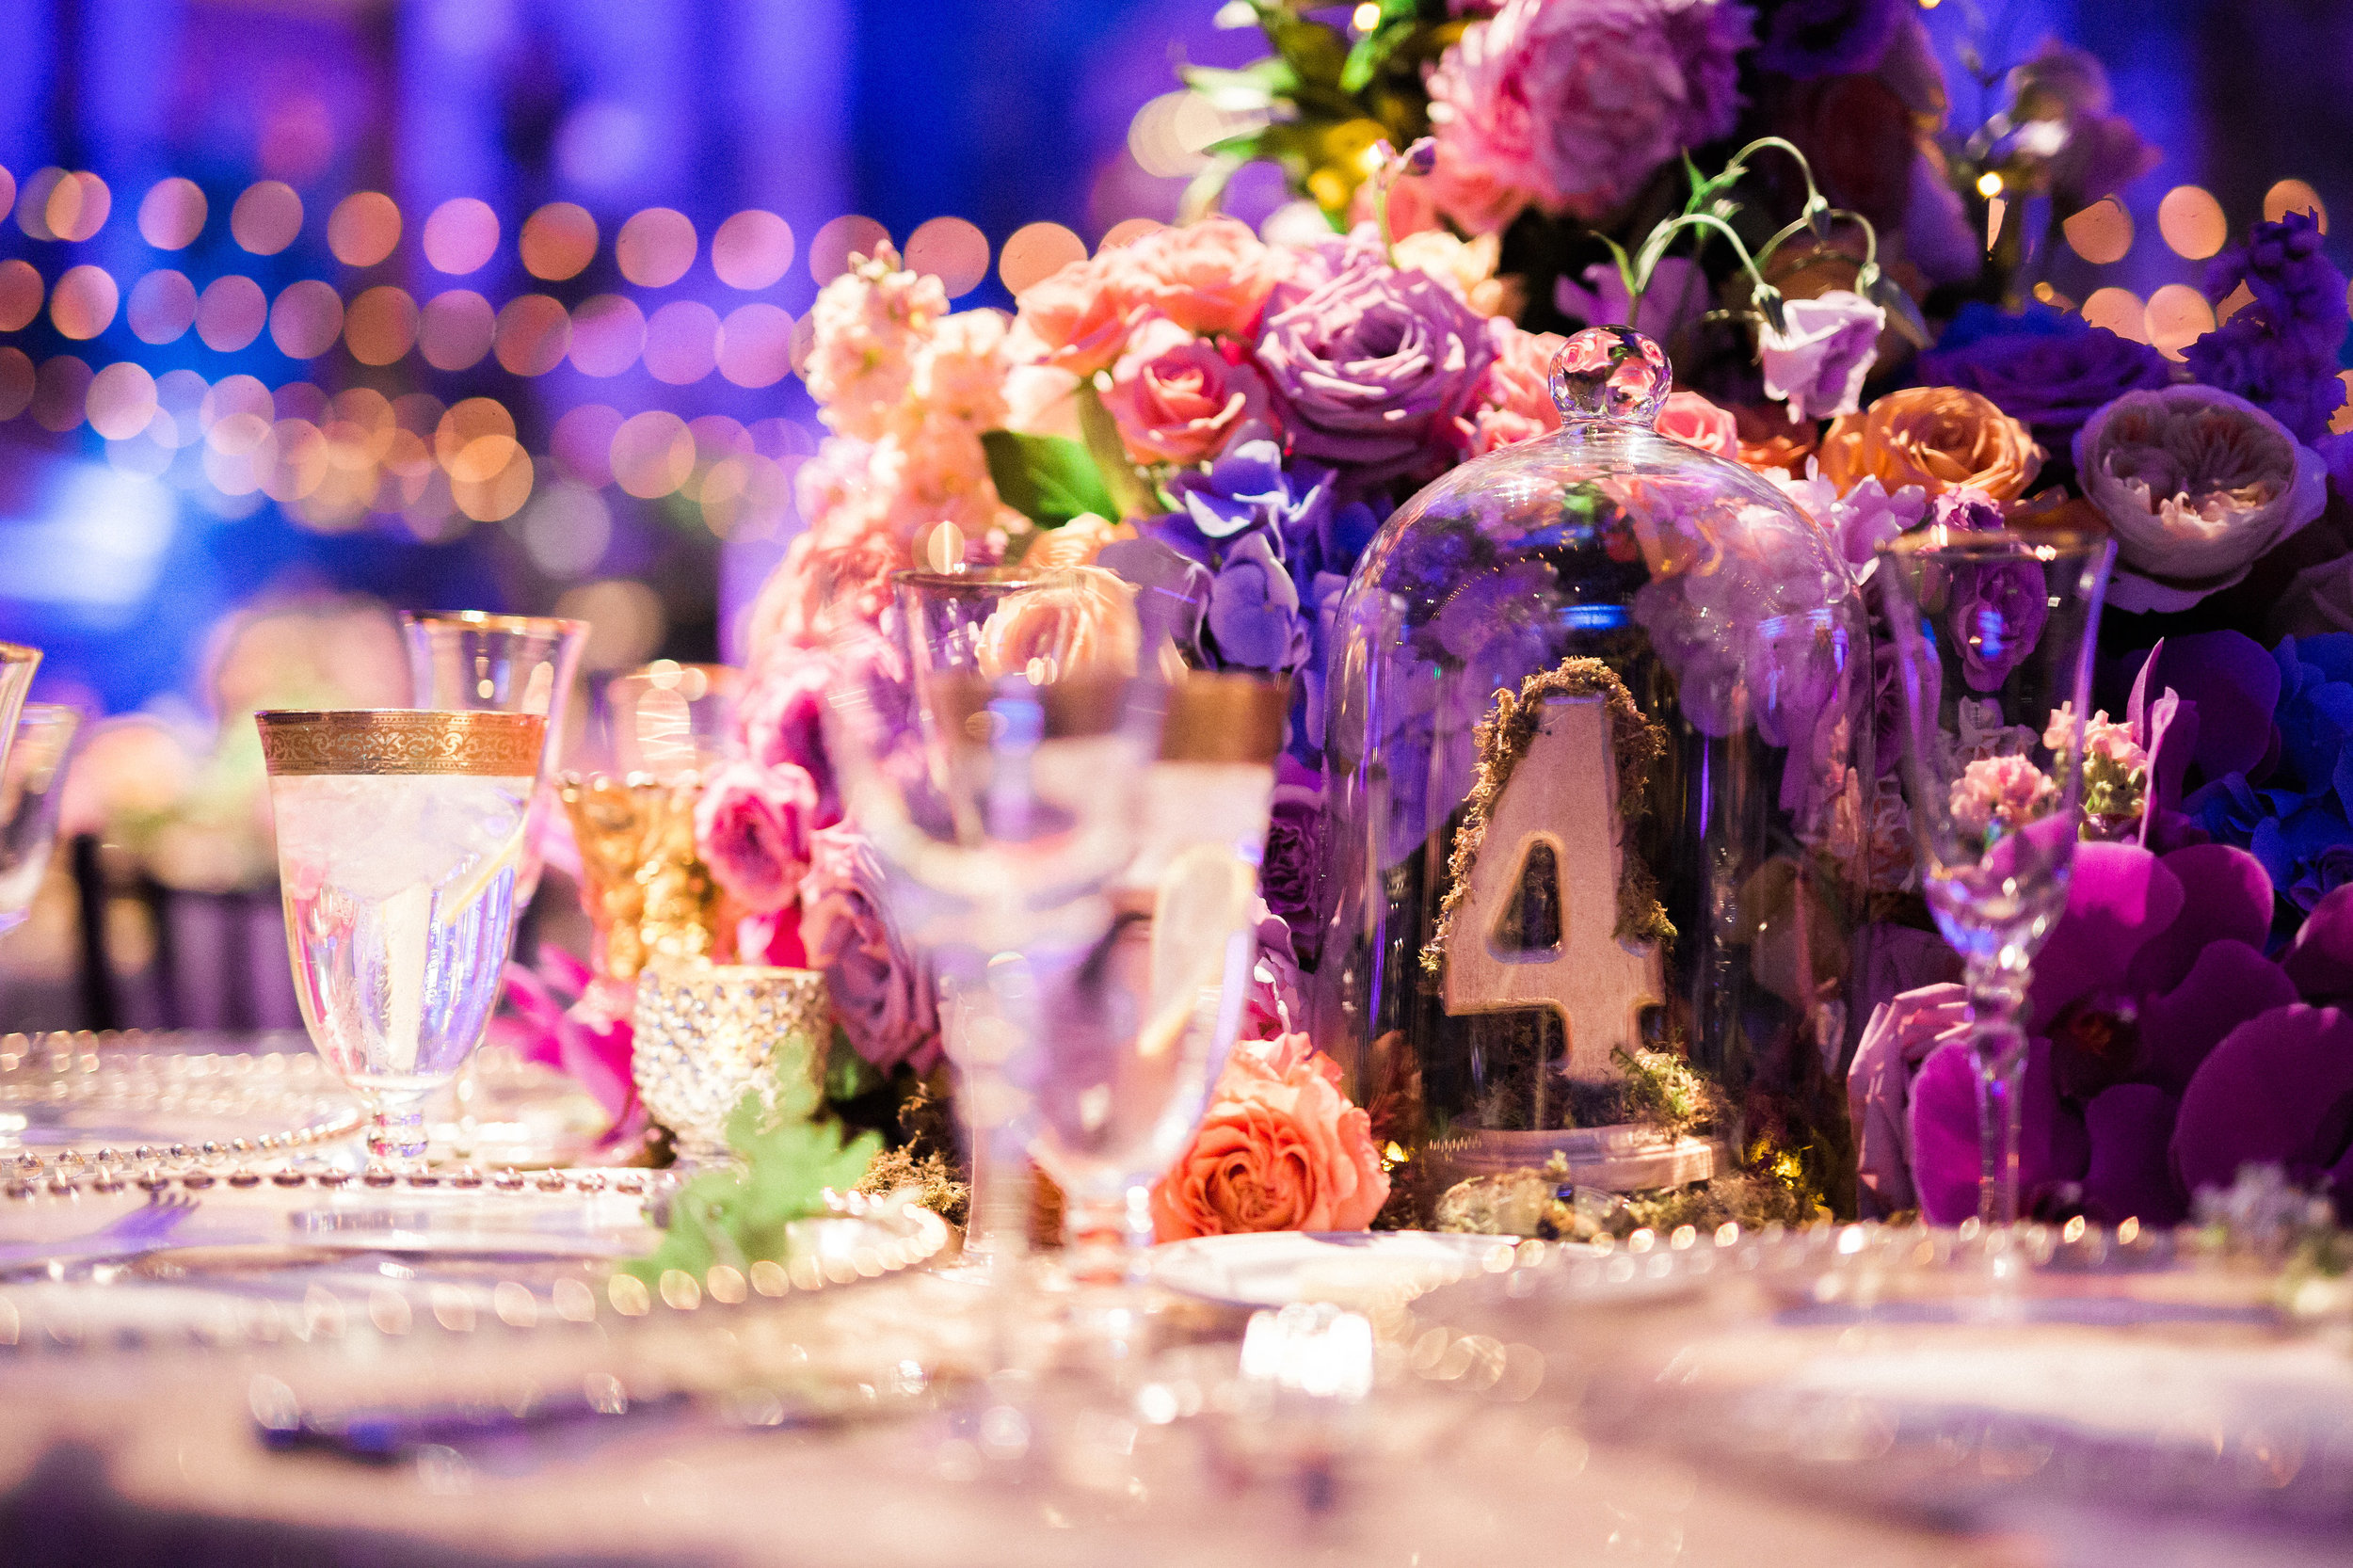 Guest Table Details at Reception at The Hilton Netherland Plaza Hotel Cincinnati, OH